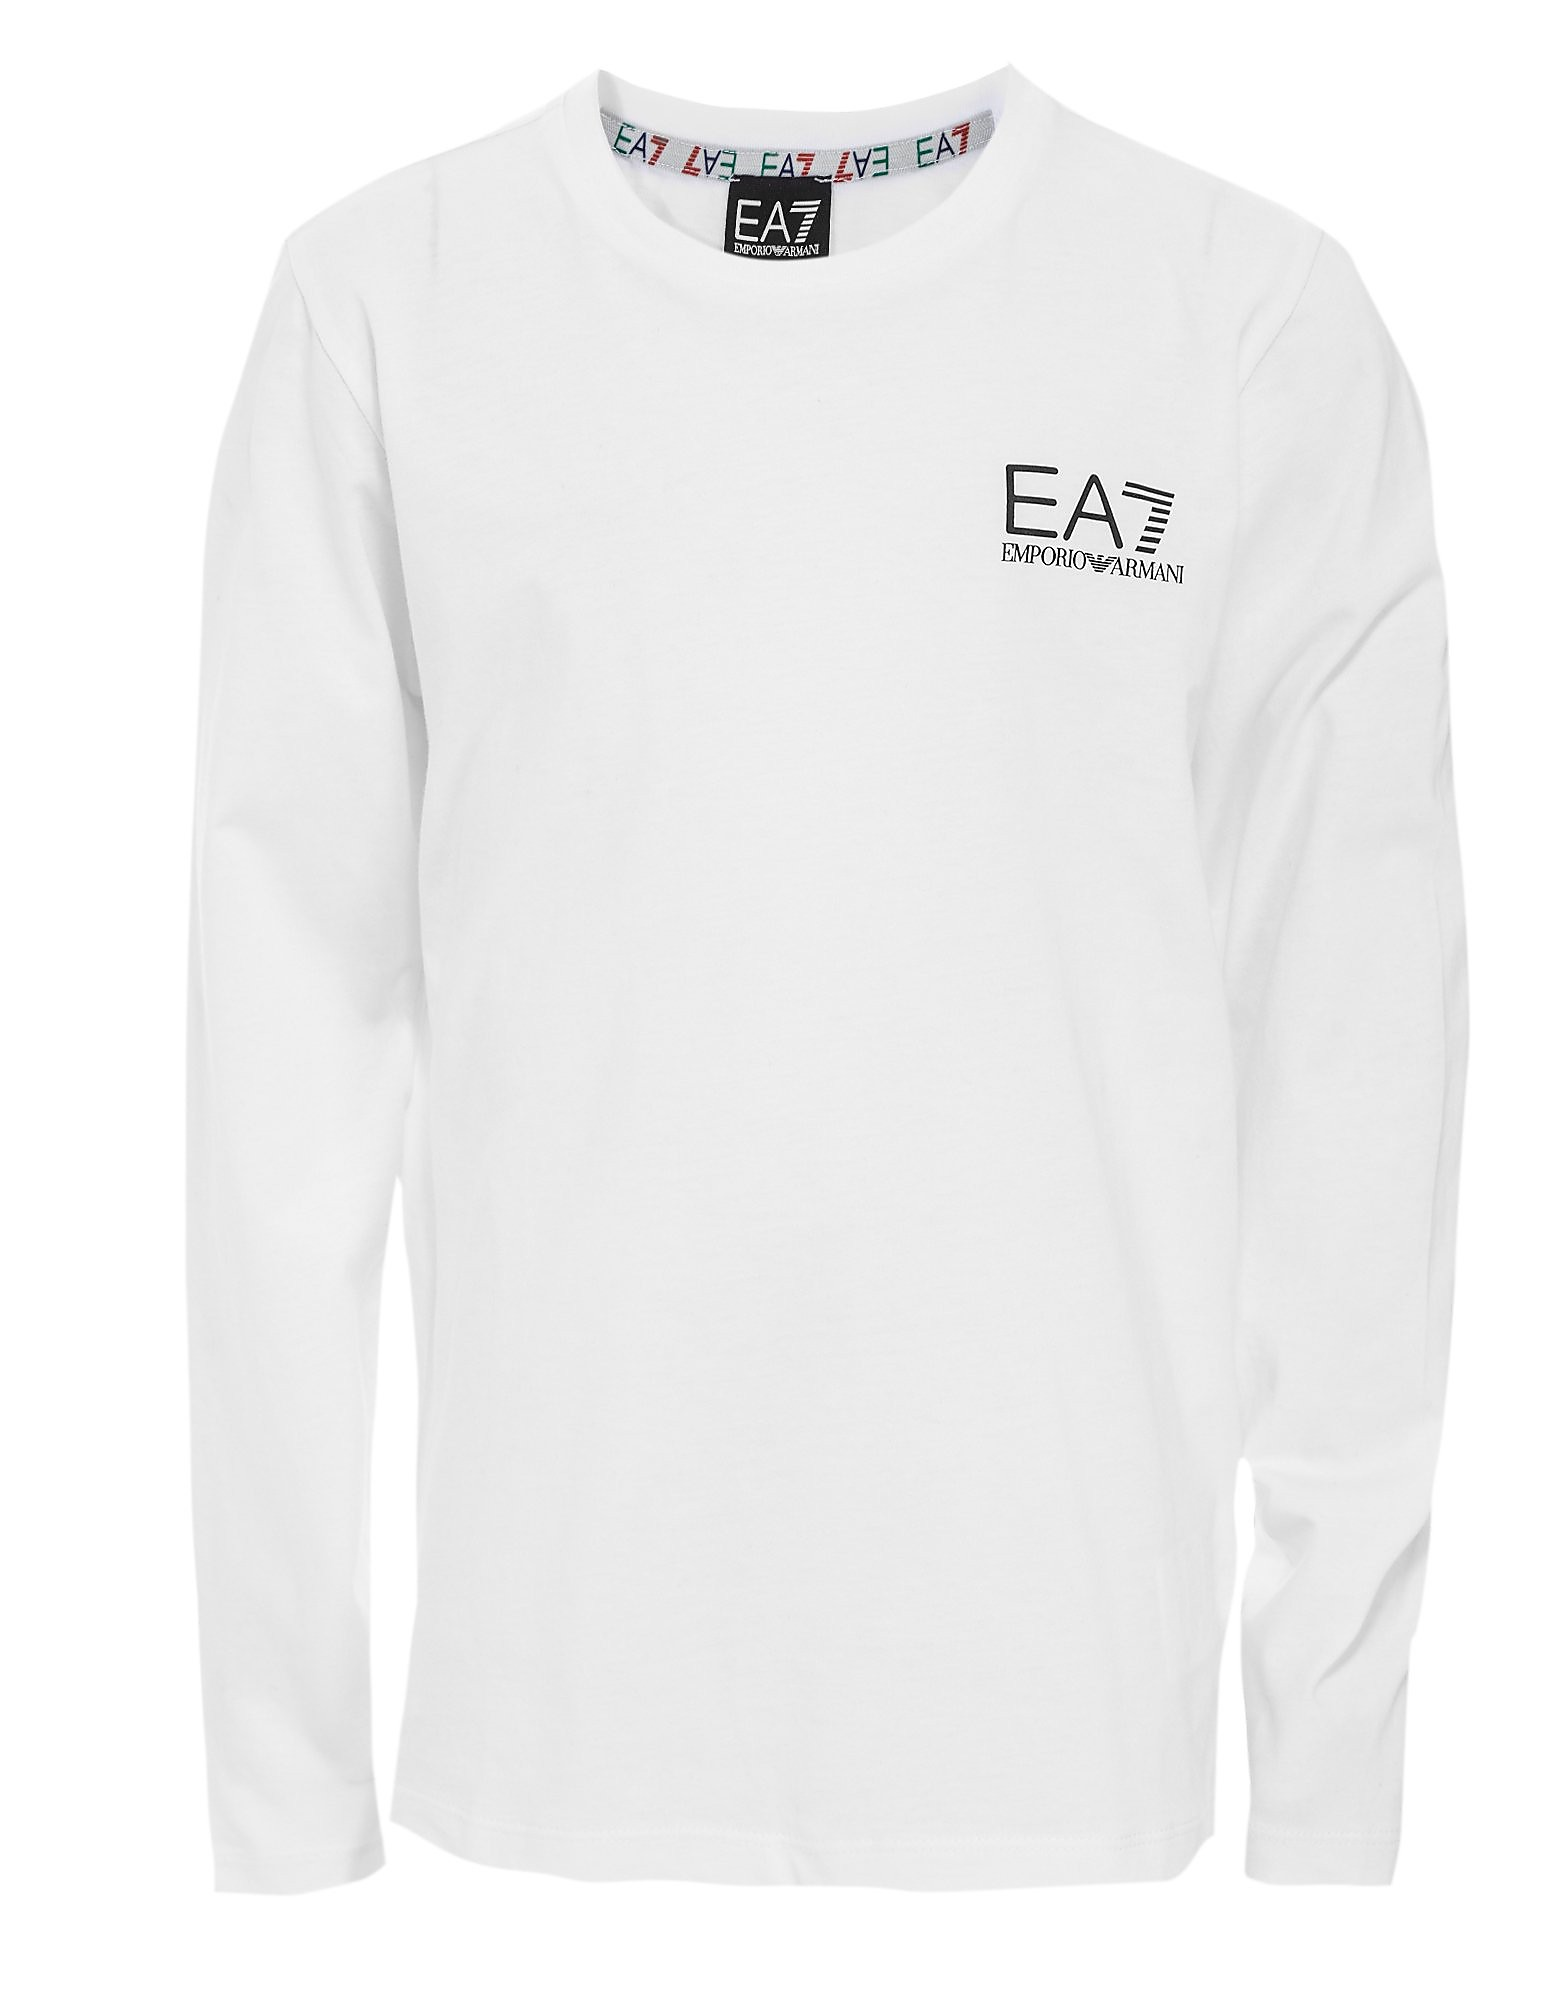 Emporio Armani EA7 Core Long Sleeve T-Shirt Junior